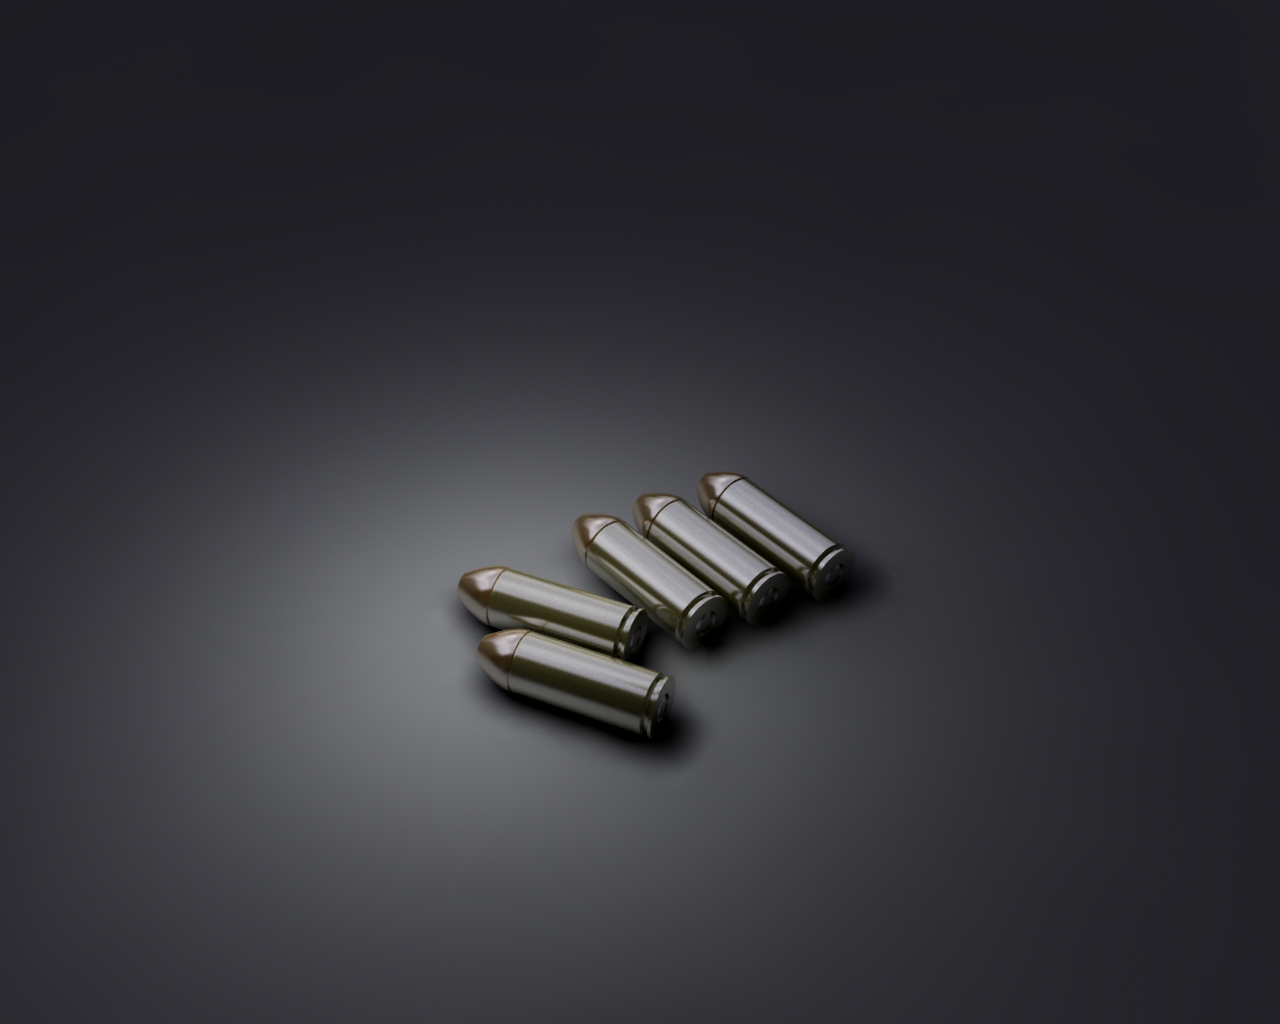 Posted in: Ammo,Background,Bomb,Bullet,Desktop,Hd,HQ,HR,images,Photos,Picture,projectile,Theme,Wallpapers